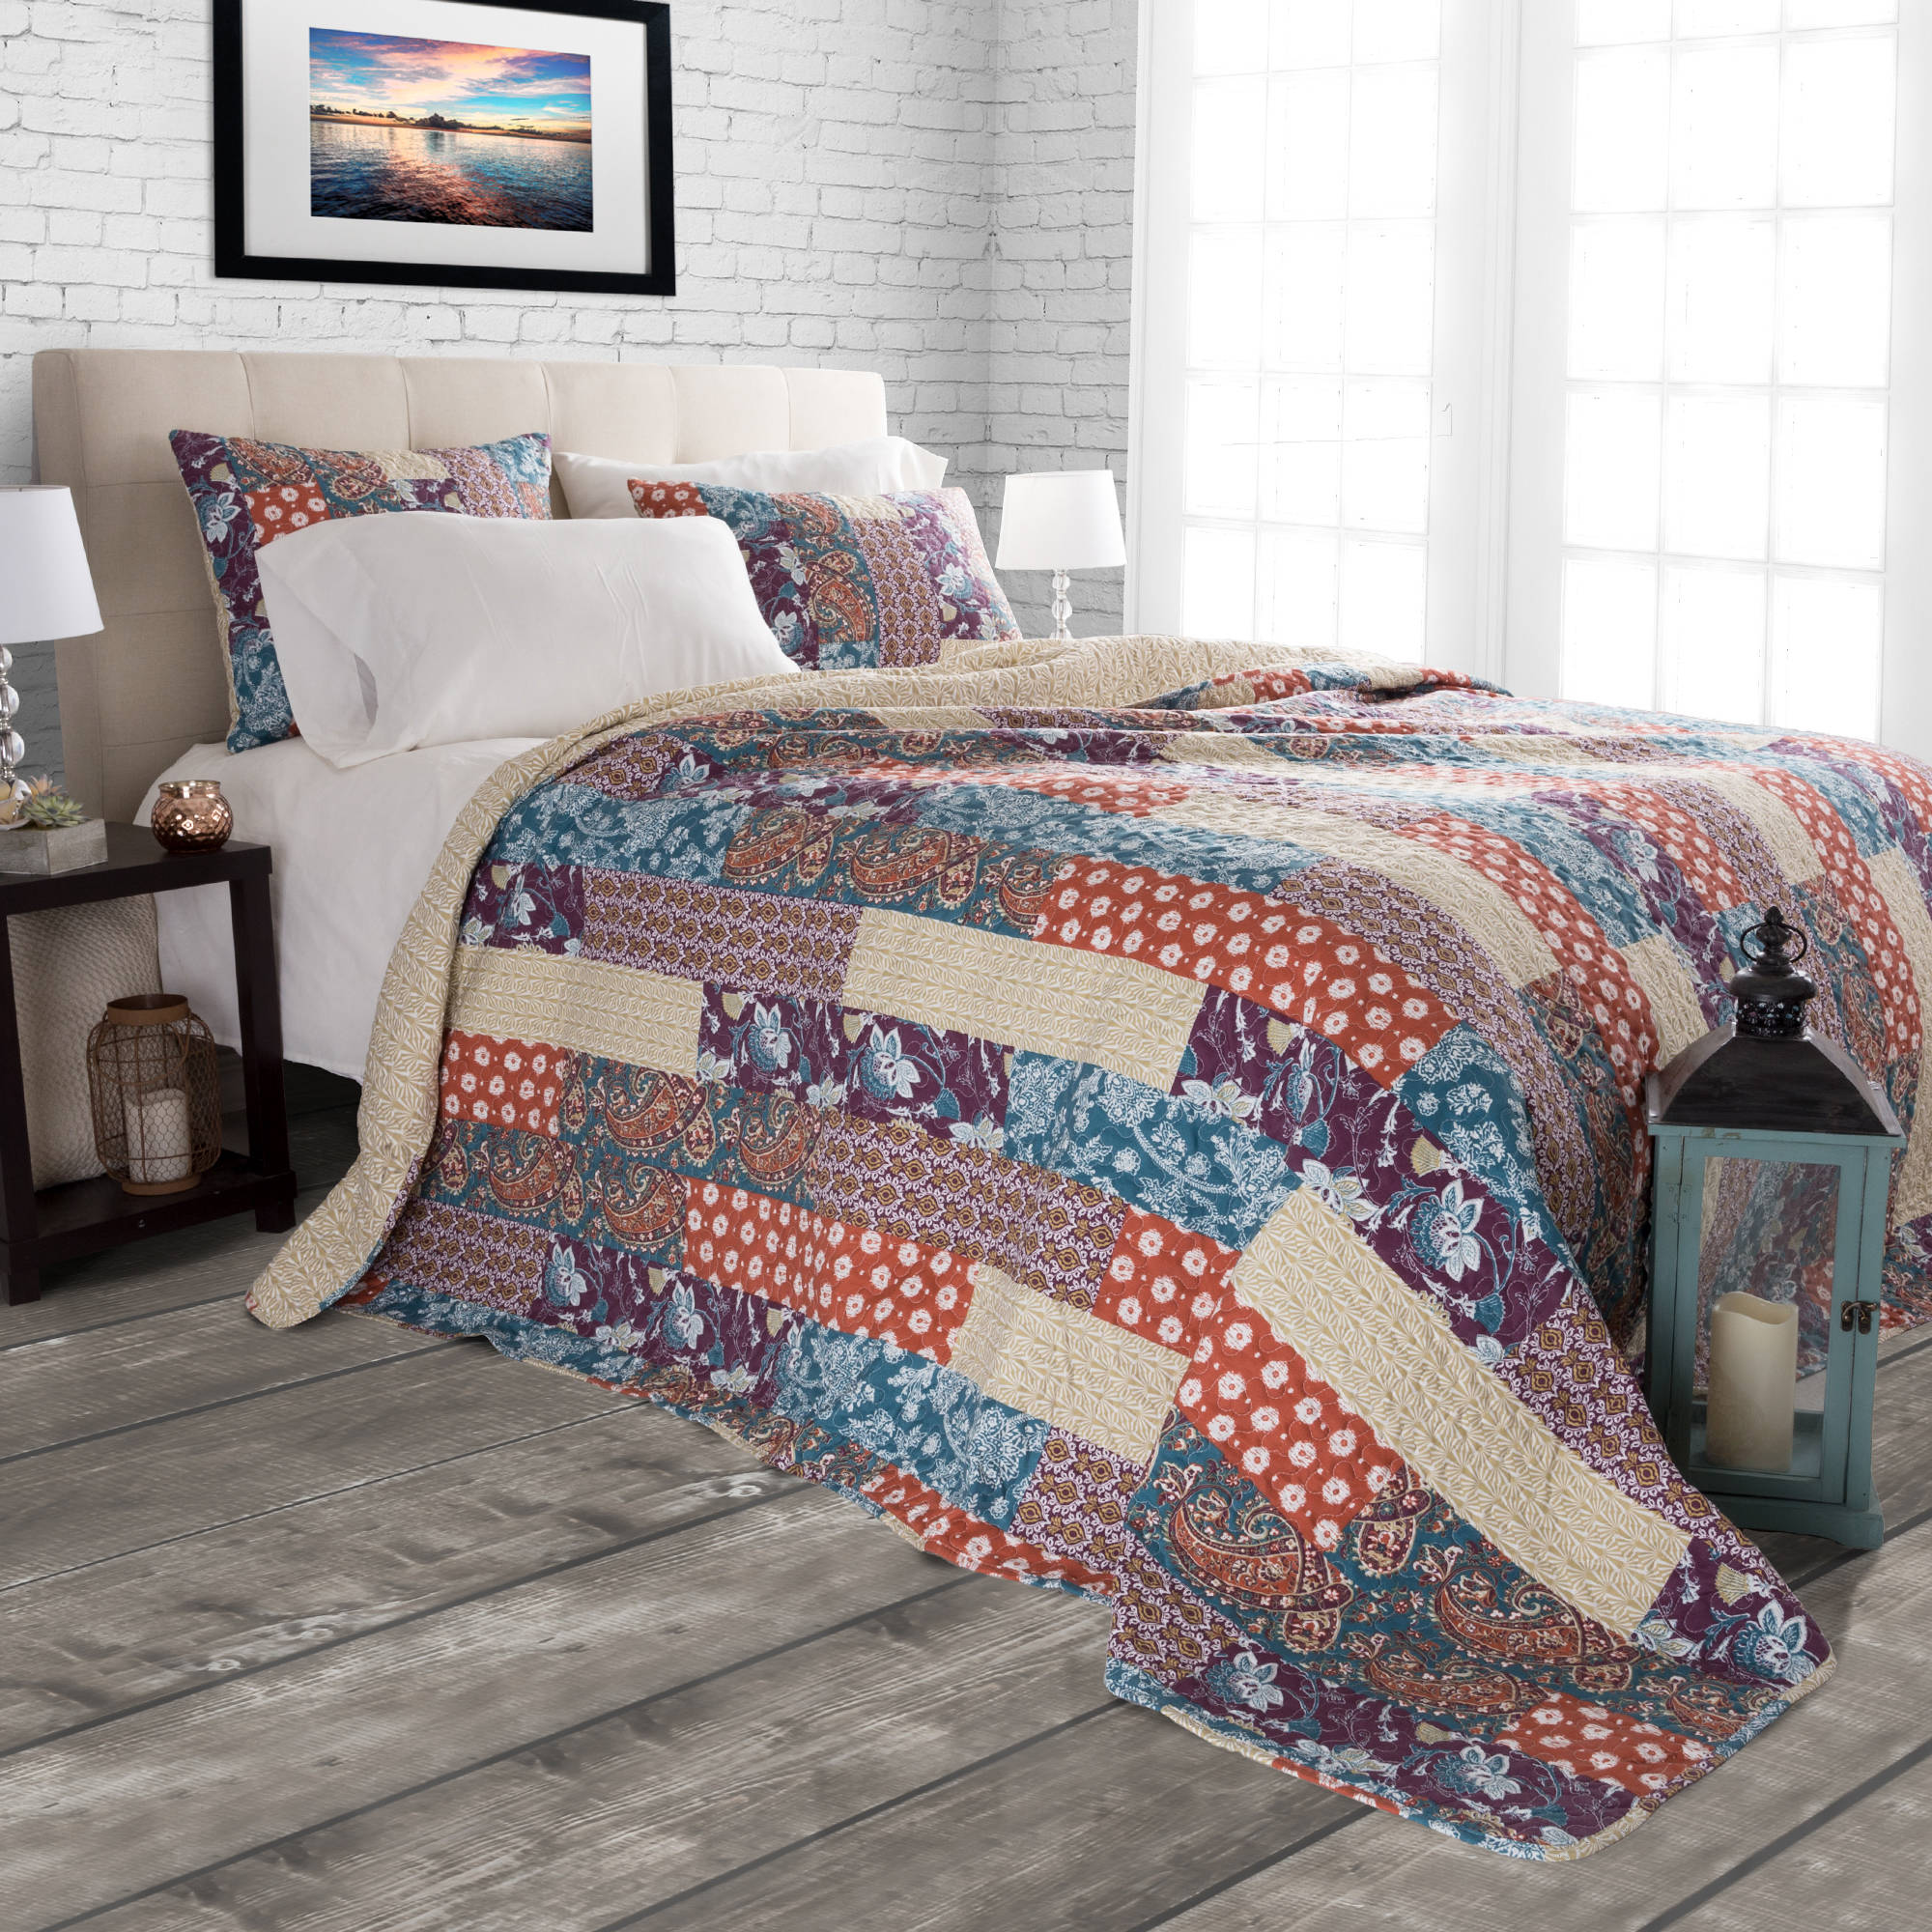 Somerset Home Quilt Set, Cabin and Lodge Santa Fe